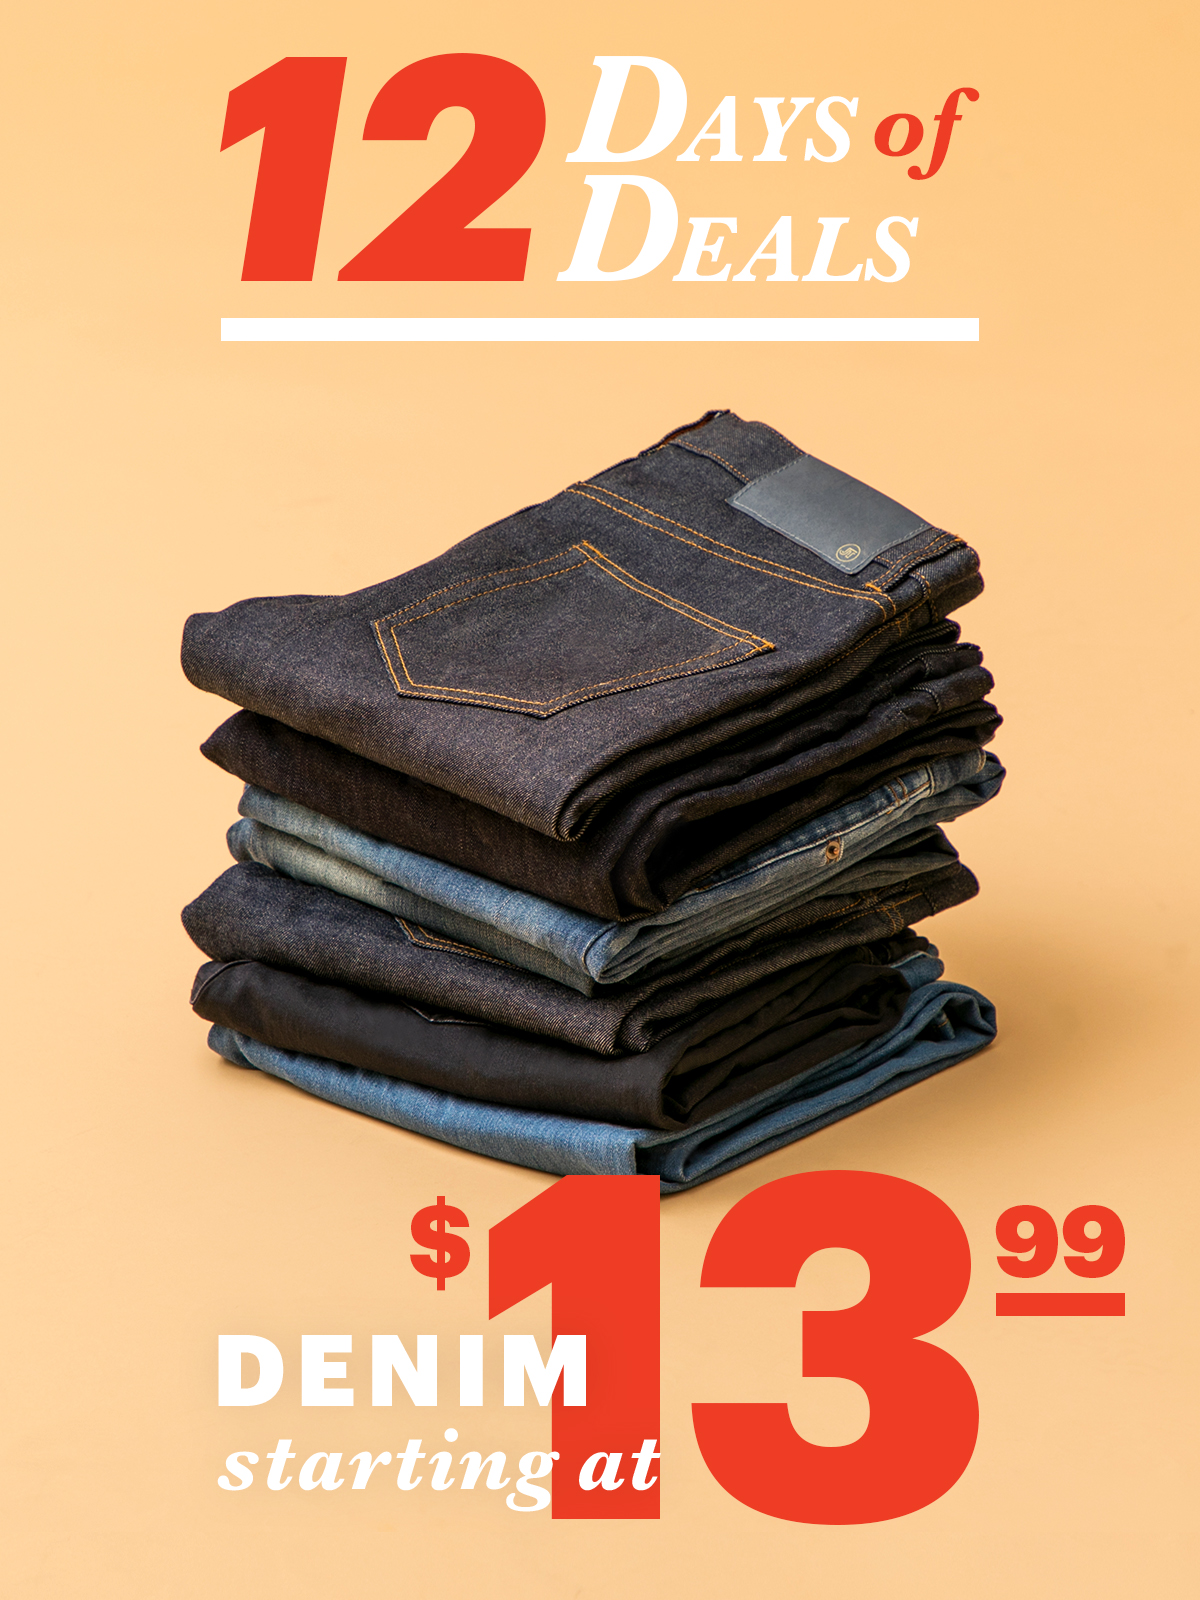 12 Days Of Deals: Day 1 Denim From $13.99